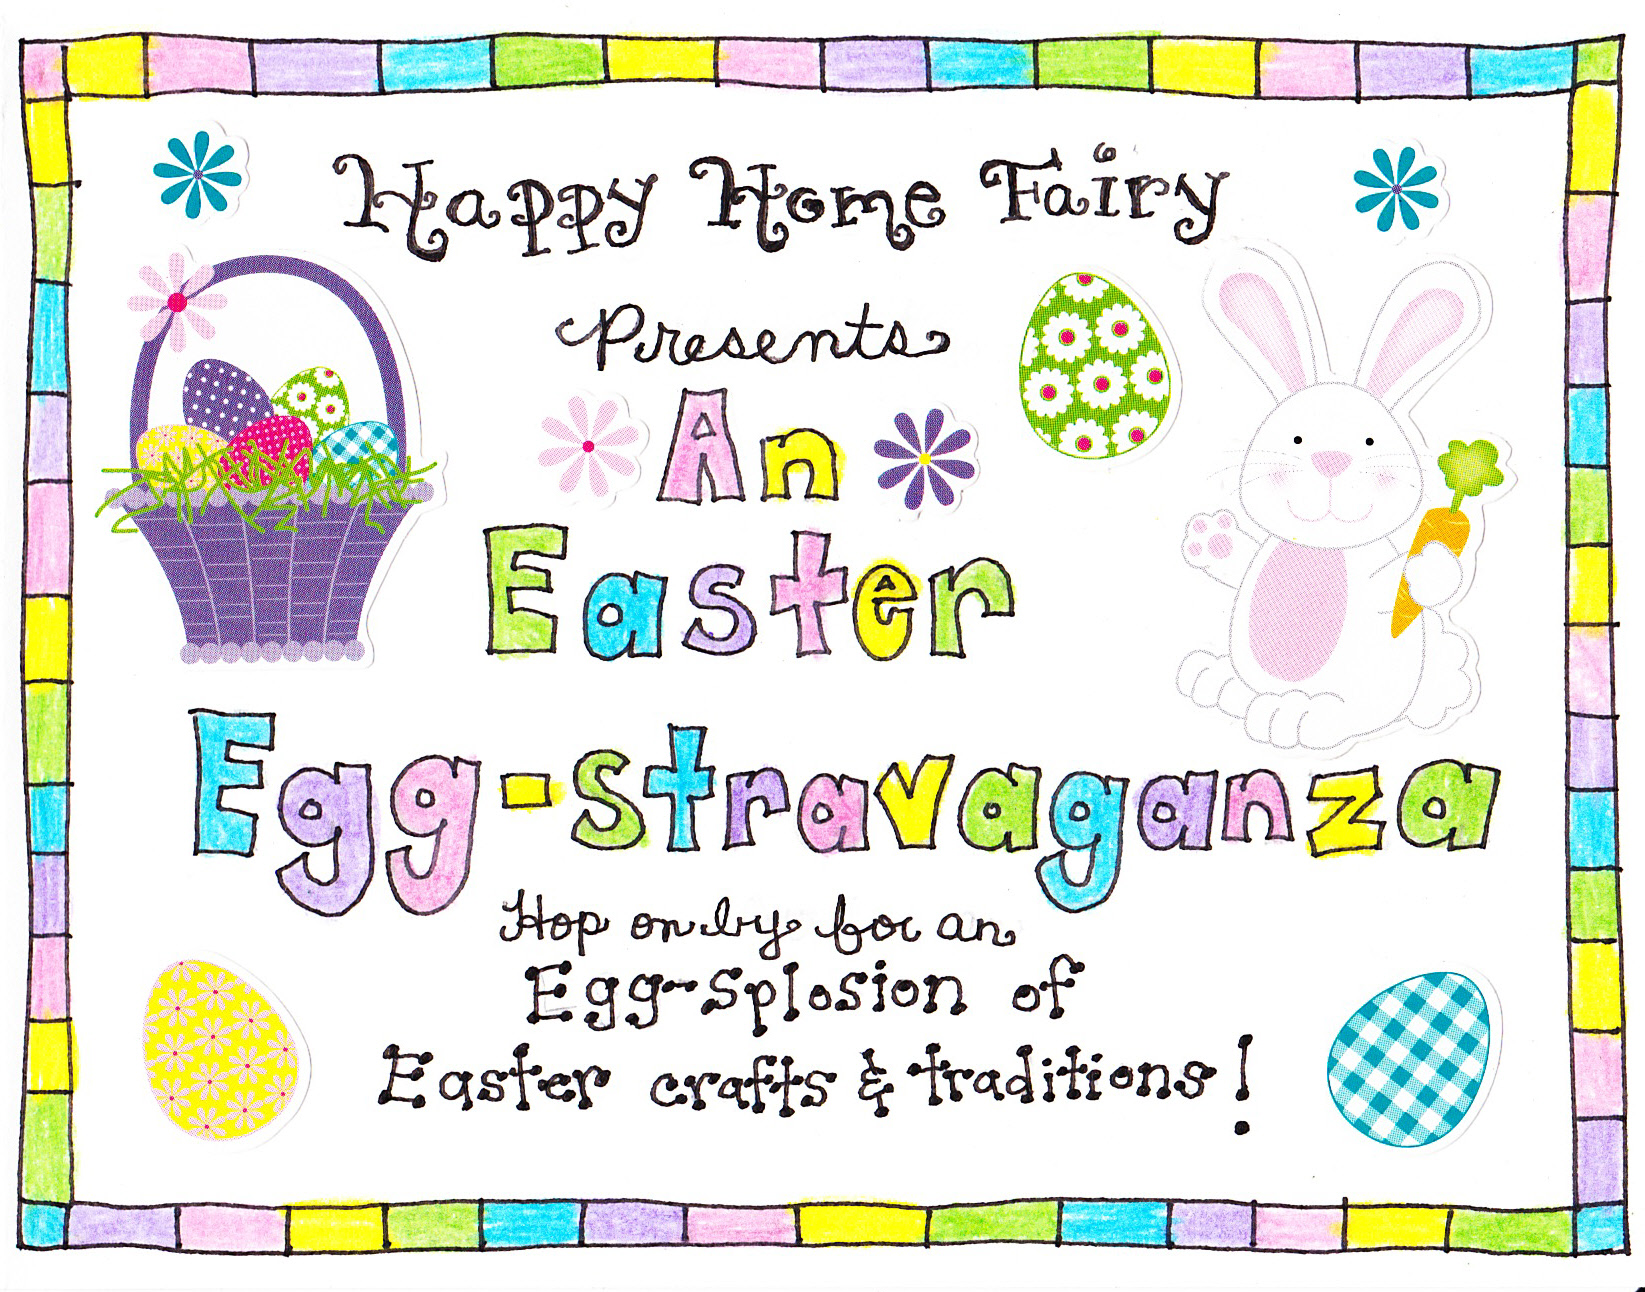 Good Friday and Last-Minute Easter Ideas - Happy Home Fairy